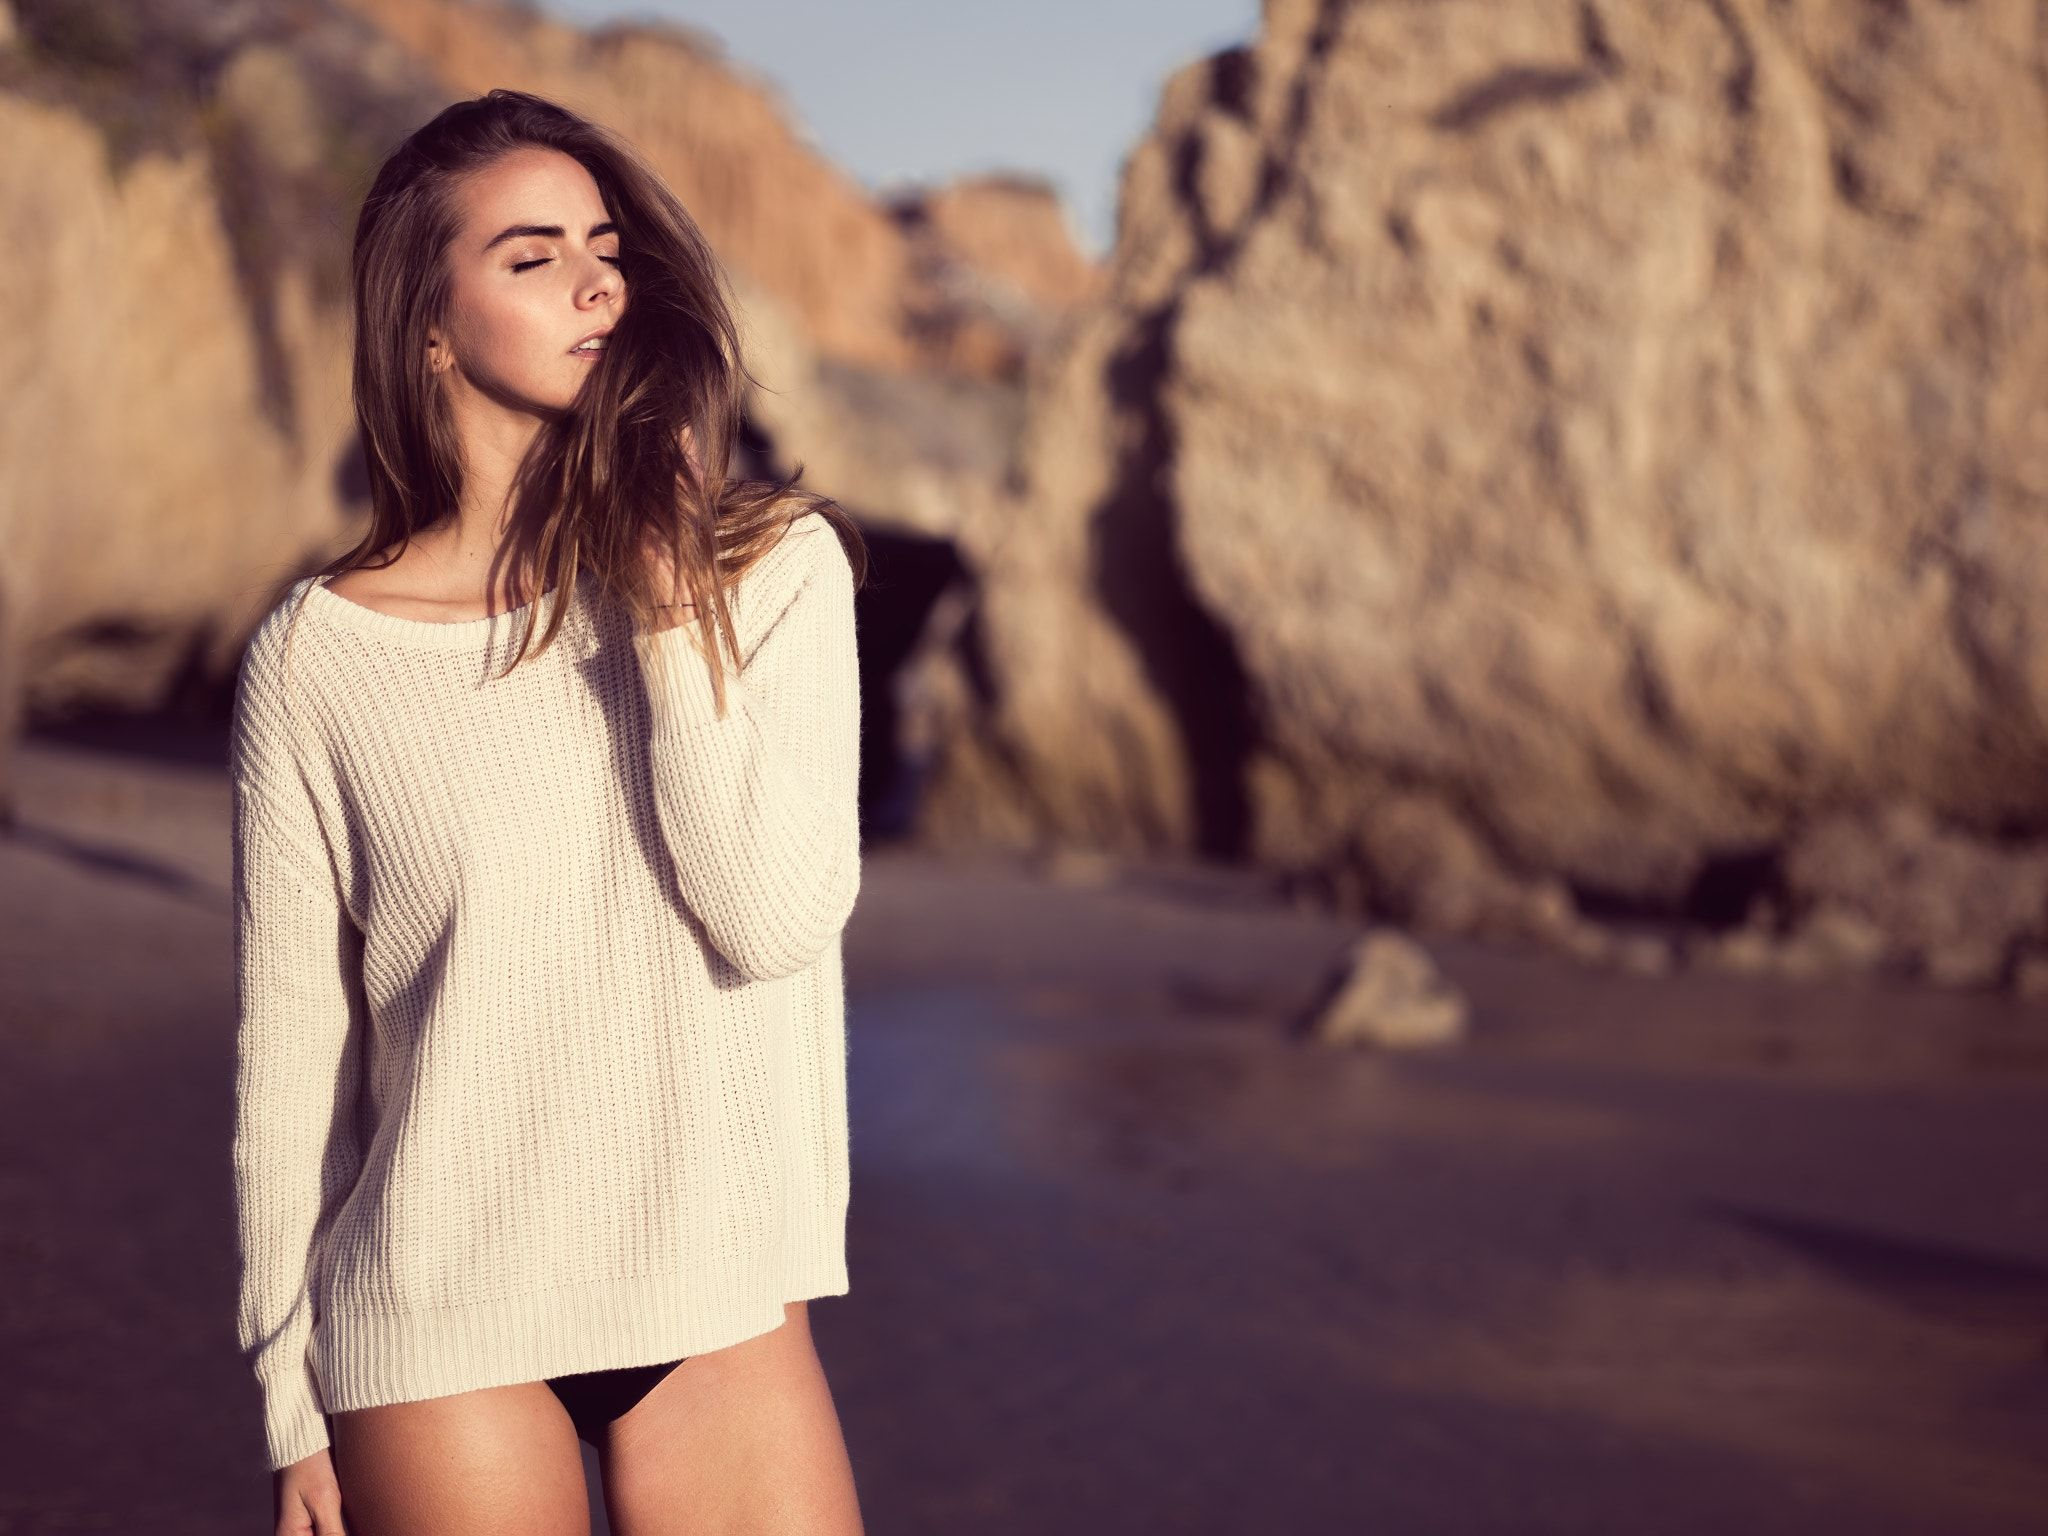 Tasha in Malibu - Natural Light Phase One XF System with IQ250 and Schneider 80mm f/2.8 LS   https://zsuttonphoto.com